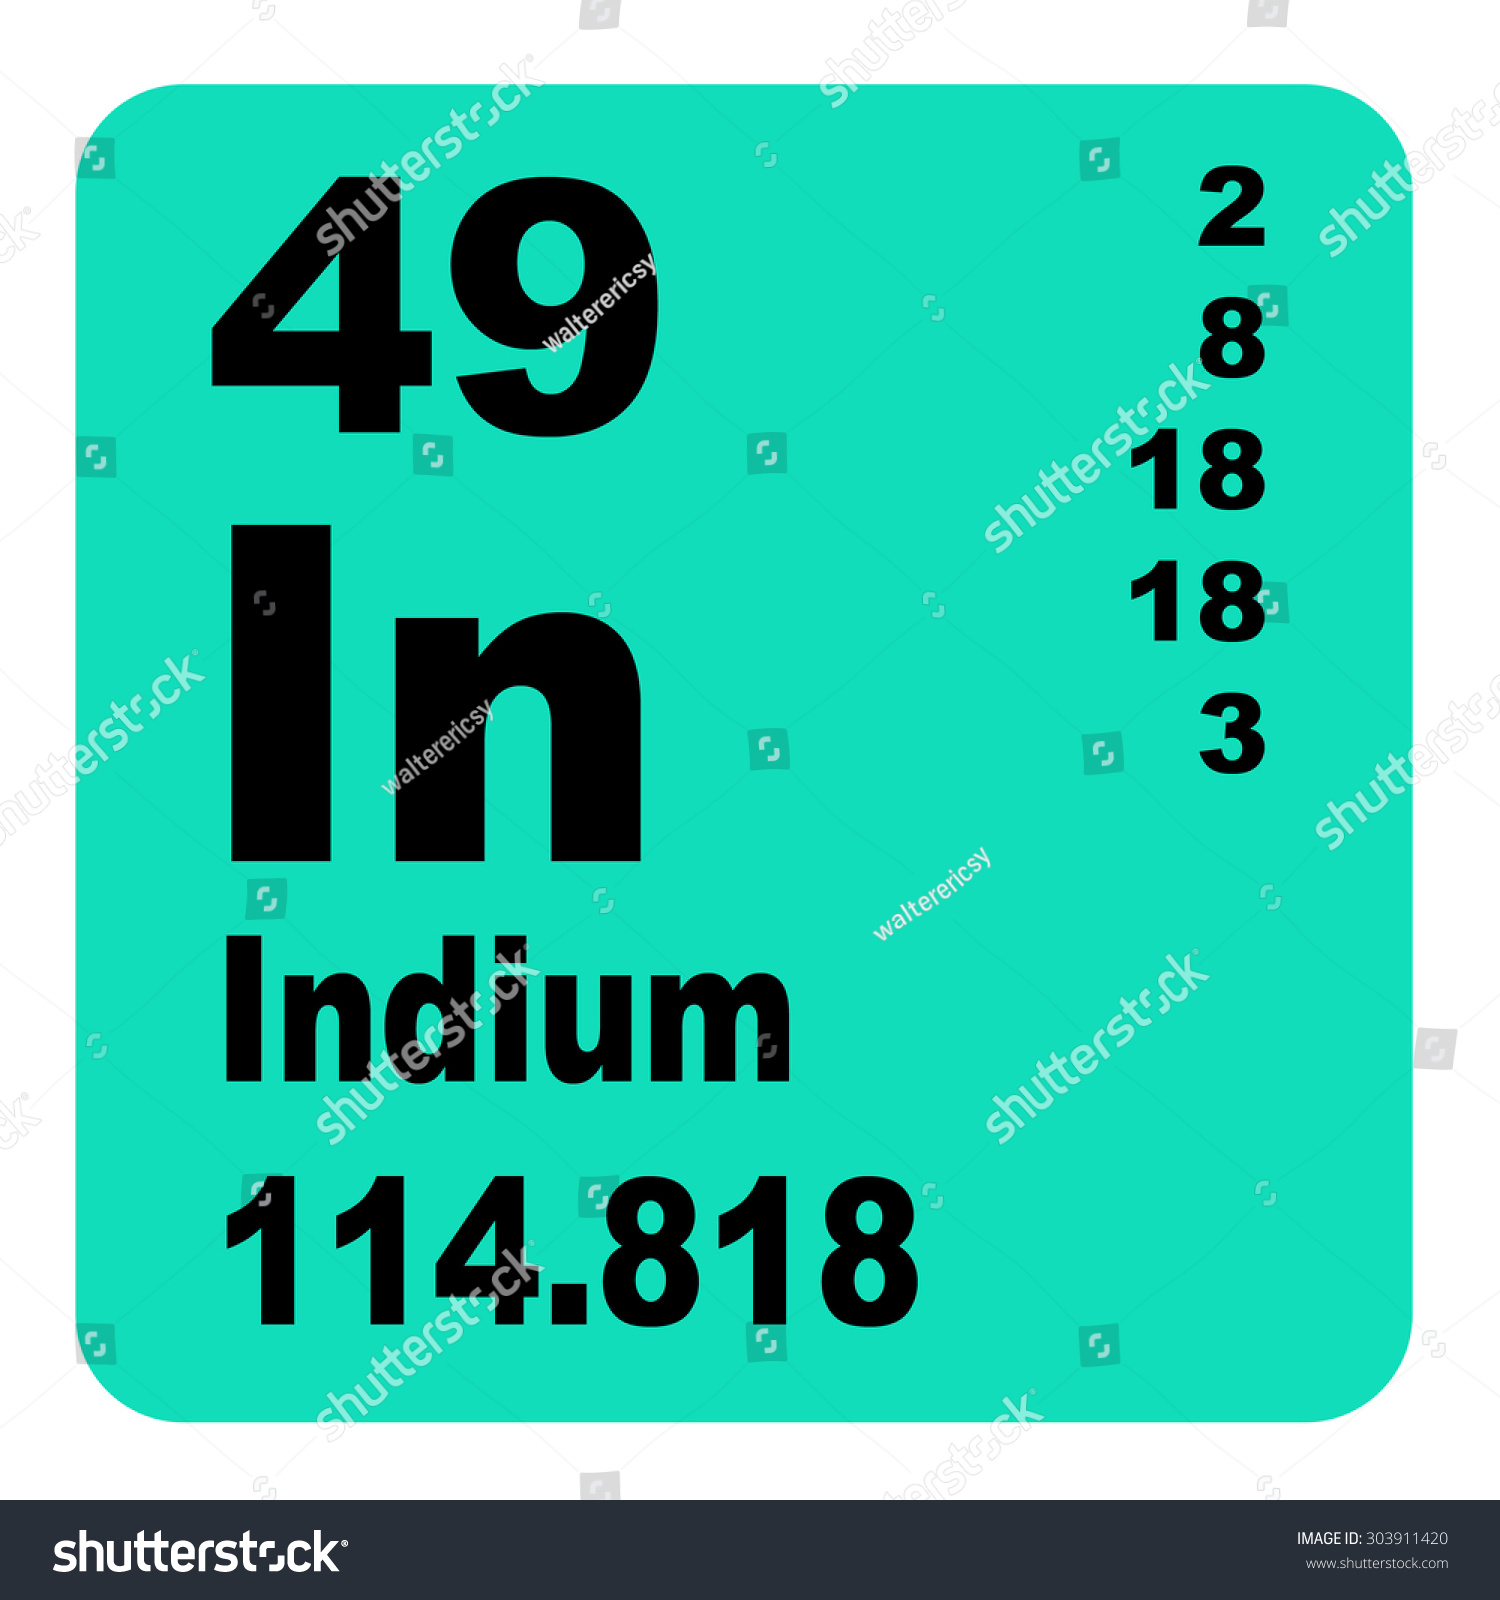 Indium periodic table elements stock illustration 303911420 indium periodic table of elements gamestrikefo Gallery